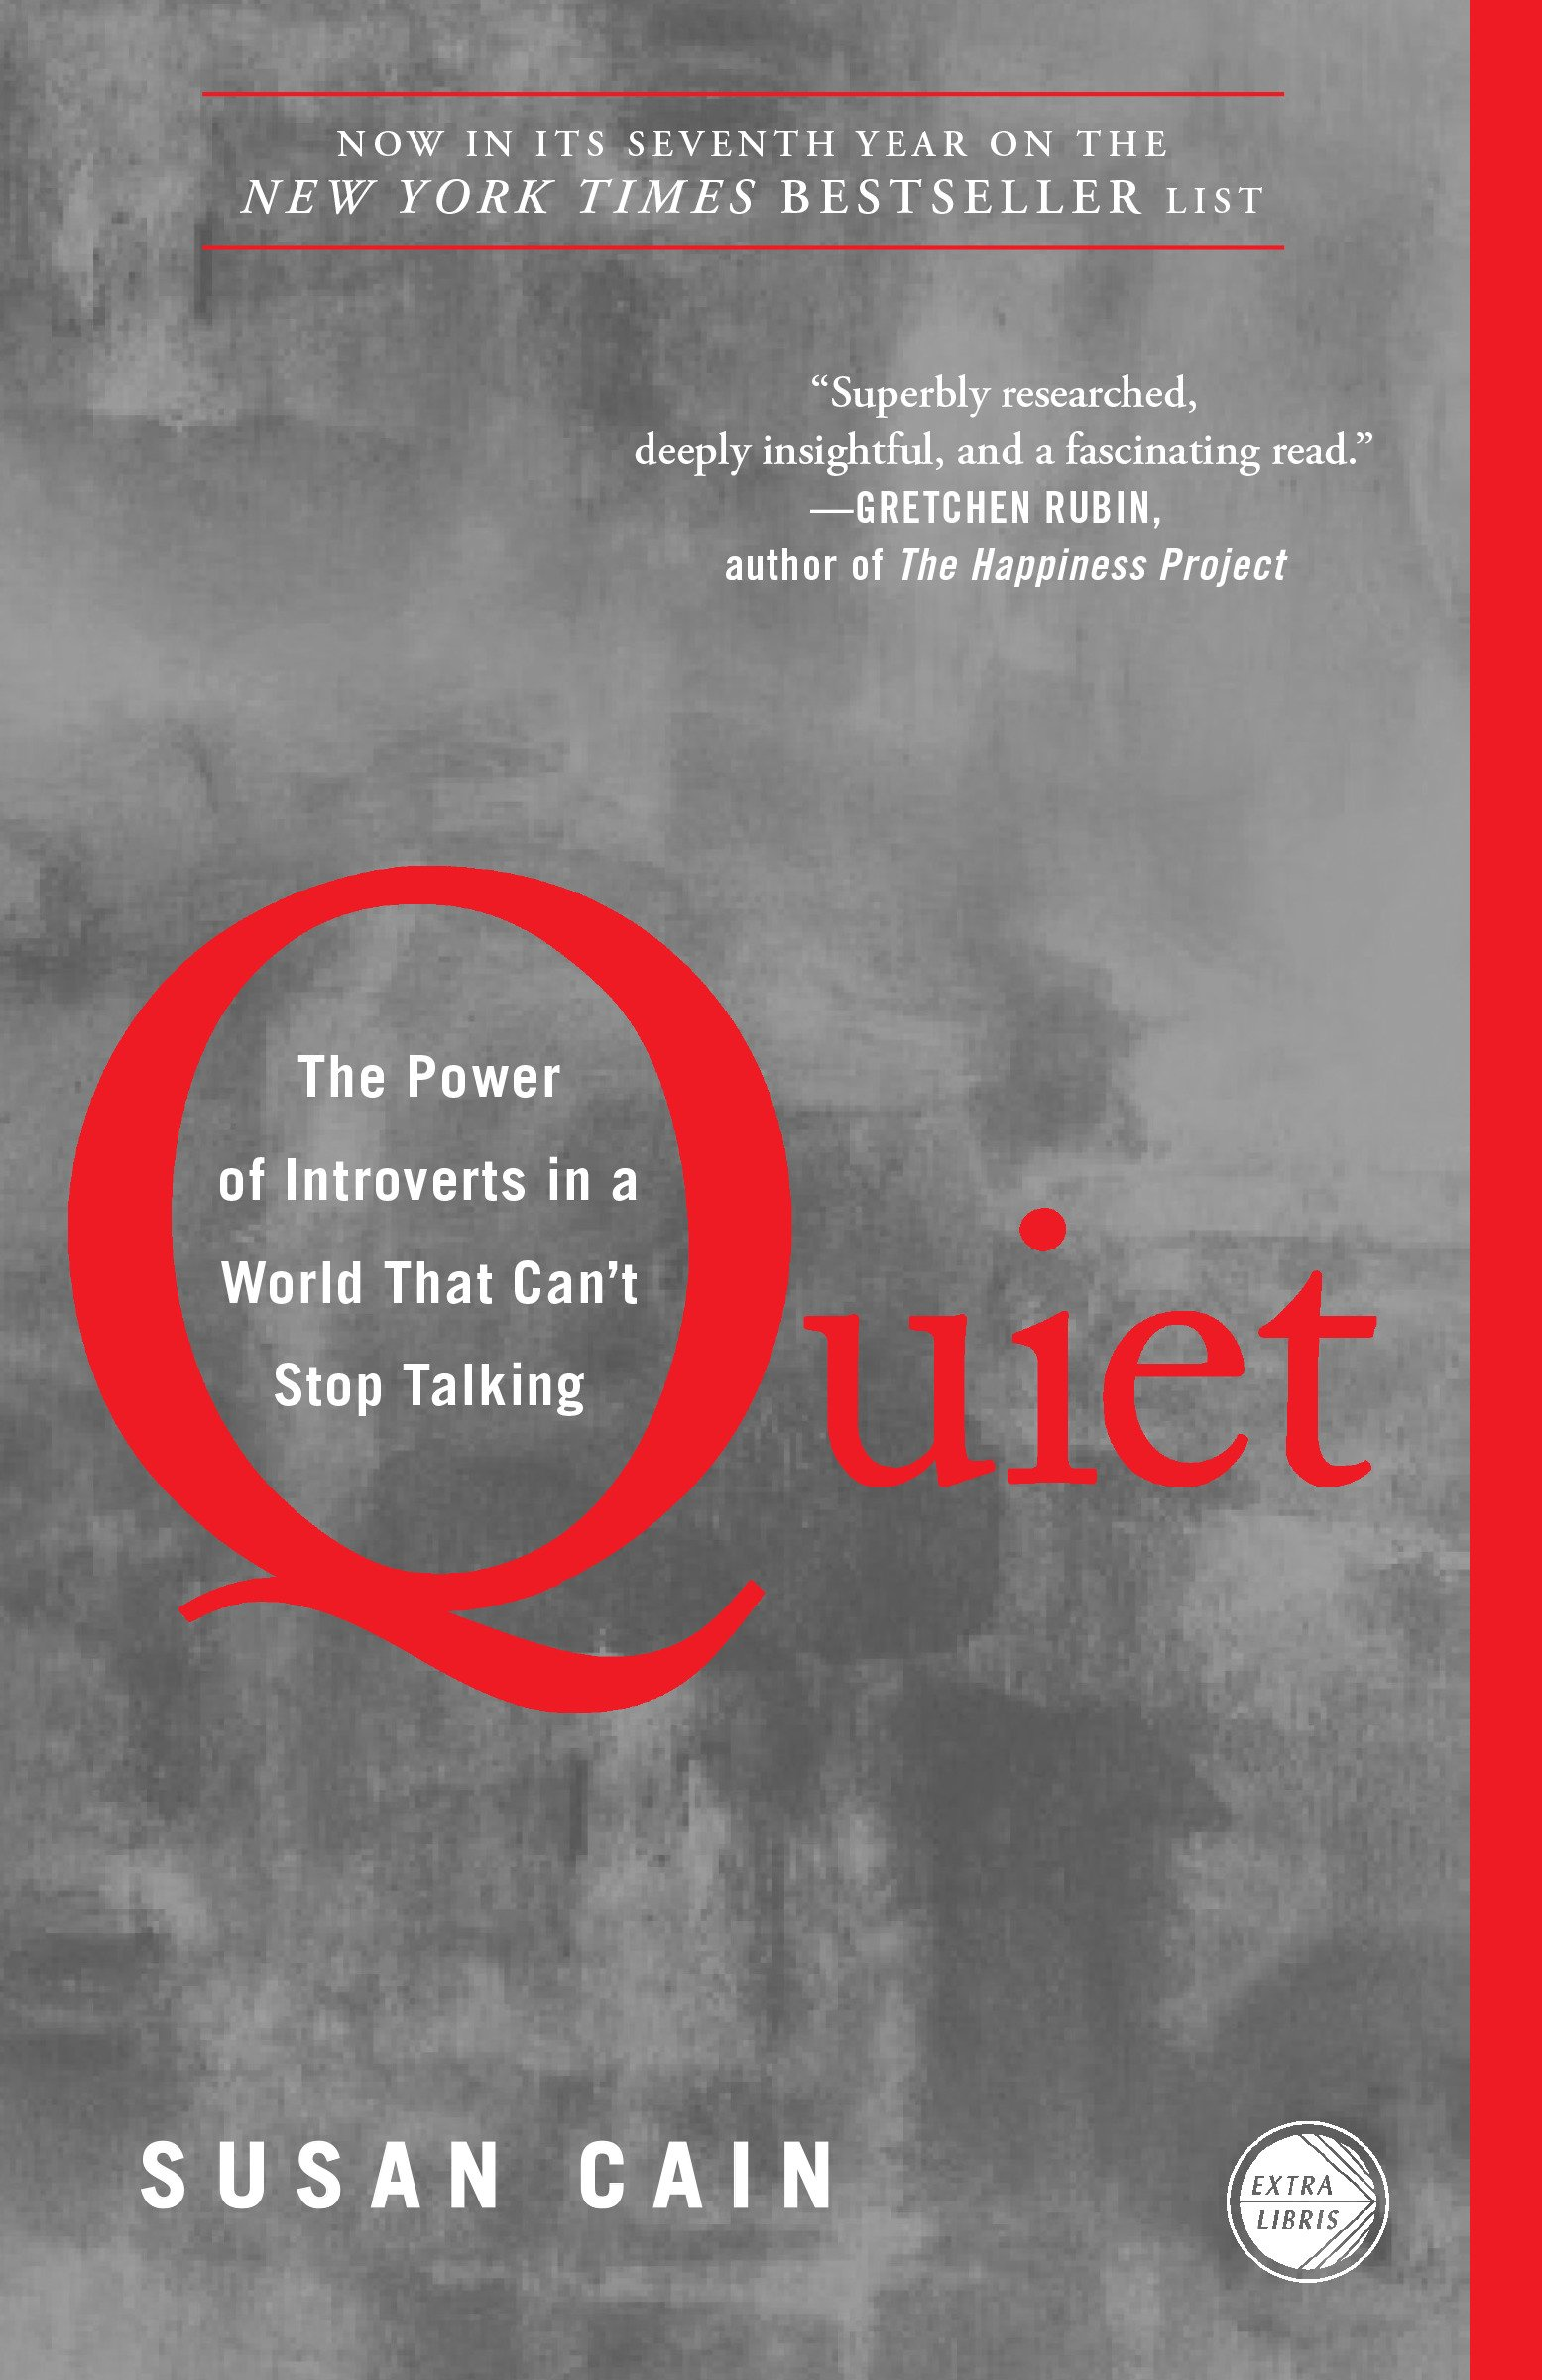 Image result for quiet susan cain amazon